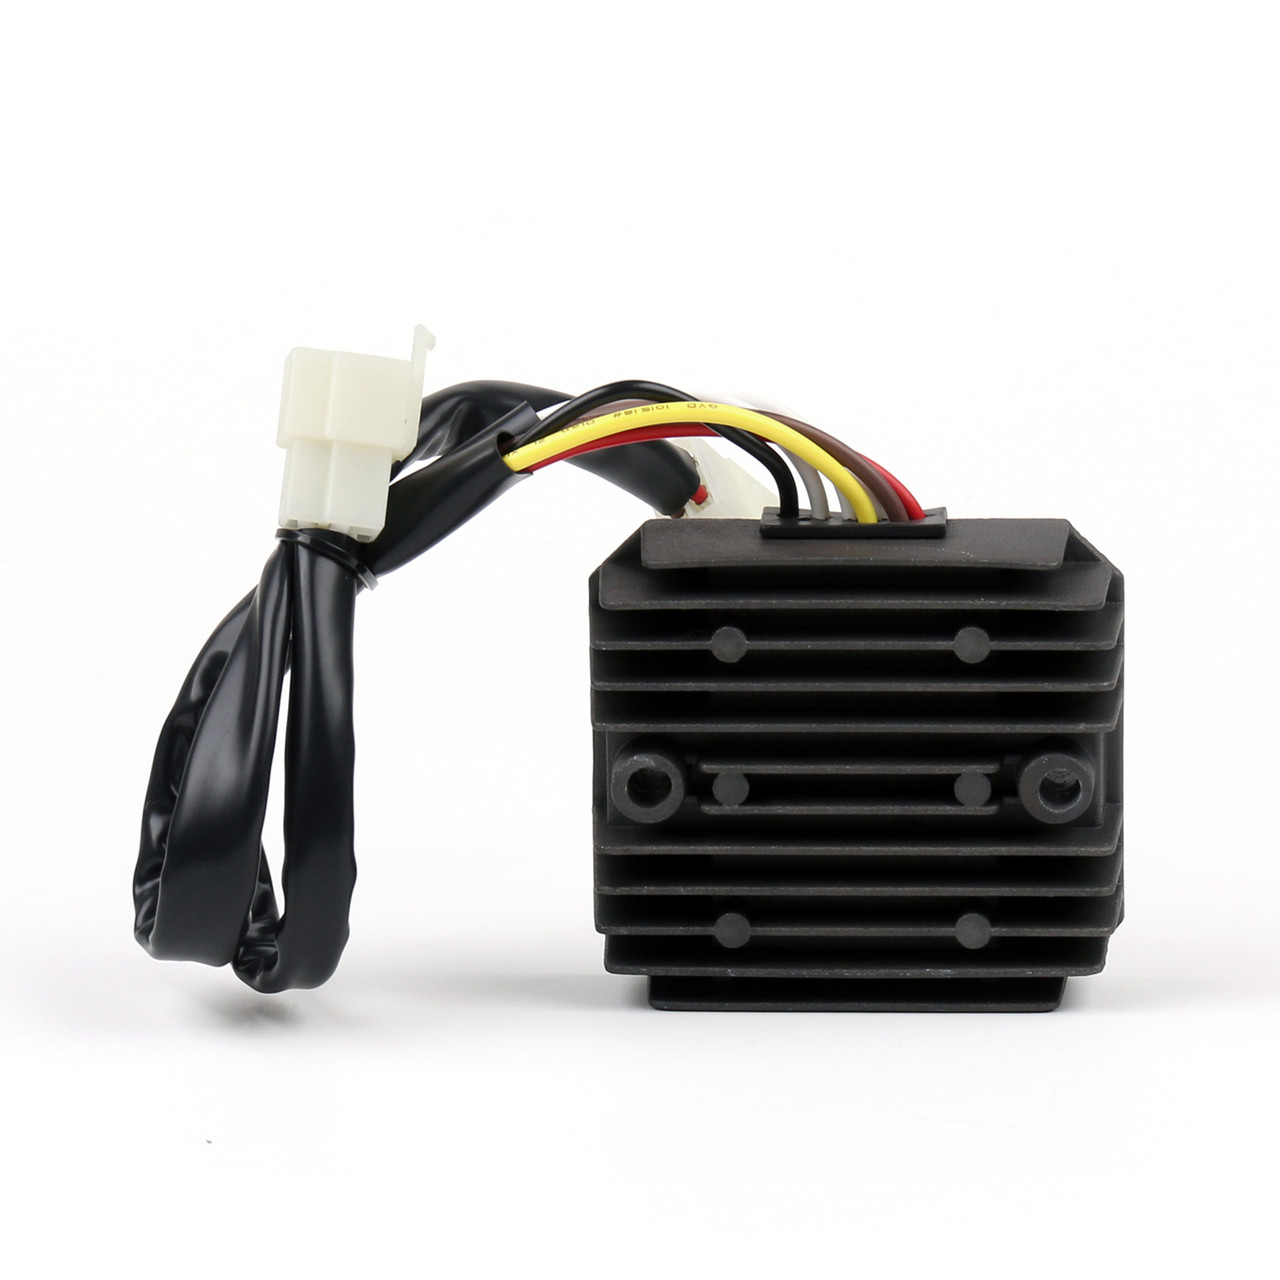 regulator voltage rectifier honda cb400 cb500 cb550 cb750 k1 k8 f1 f2 sohc 70 s [ 1280 x 1280 Pixel ]